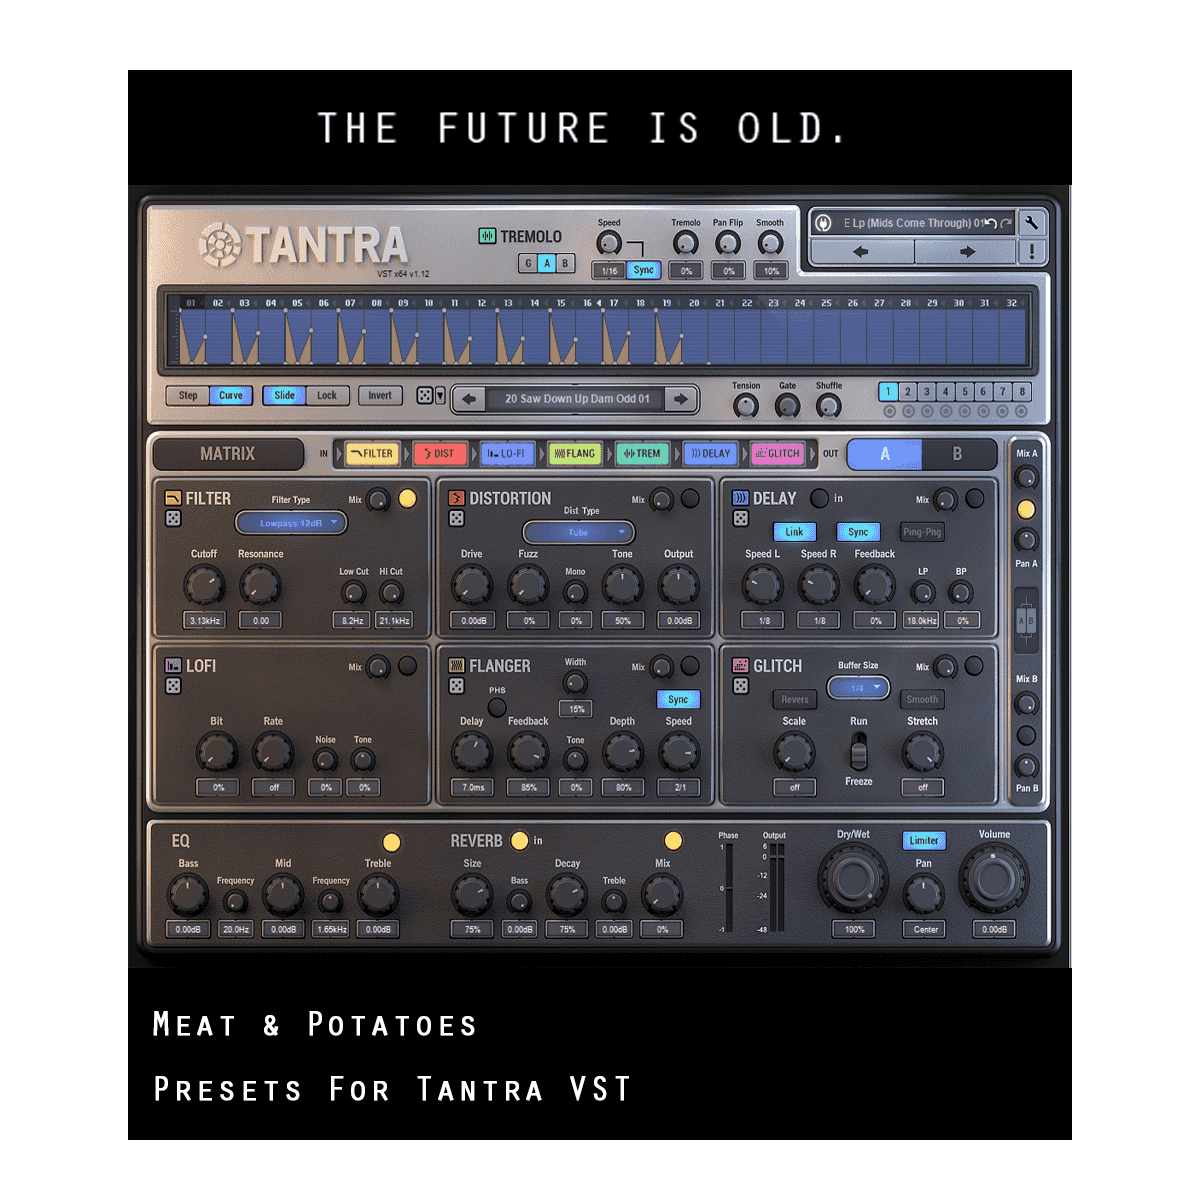 Meat and Potatoes Presets for Tantra VST